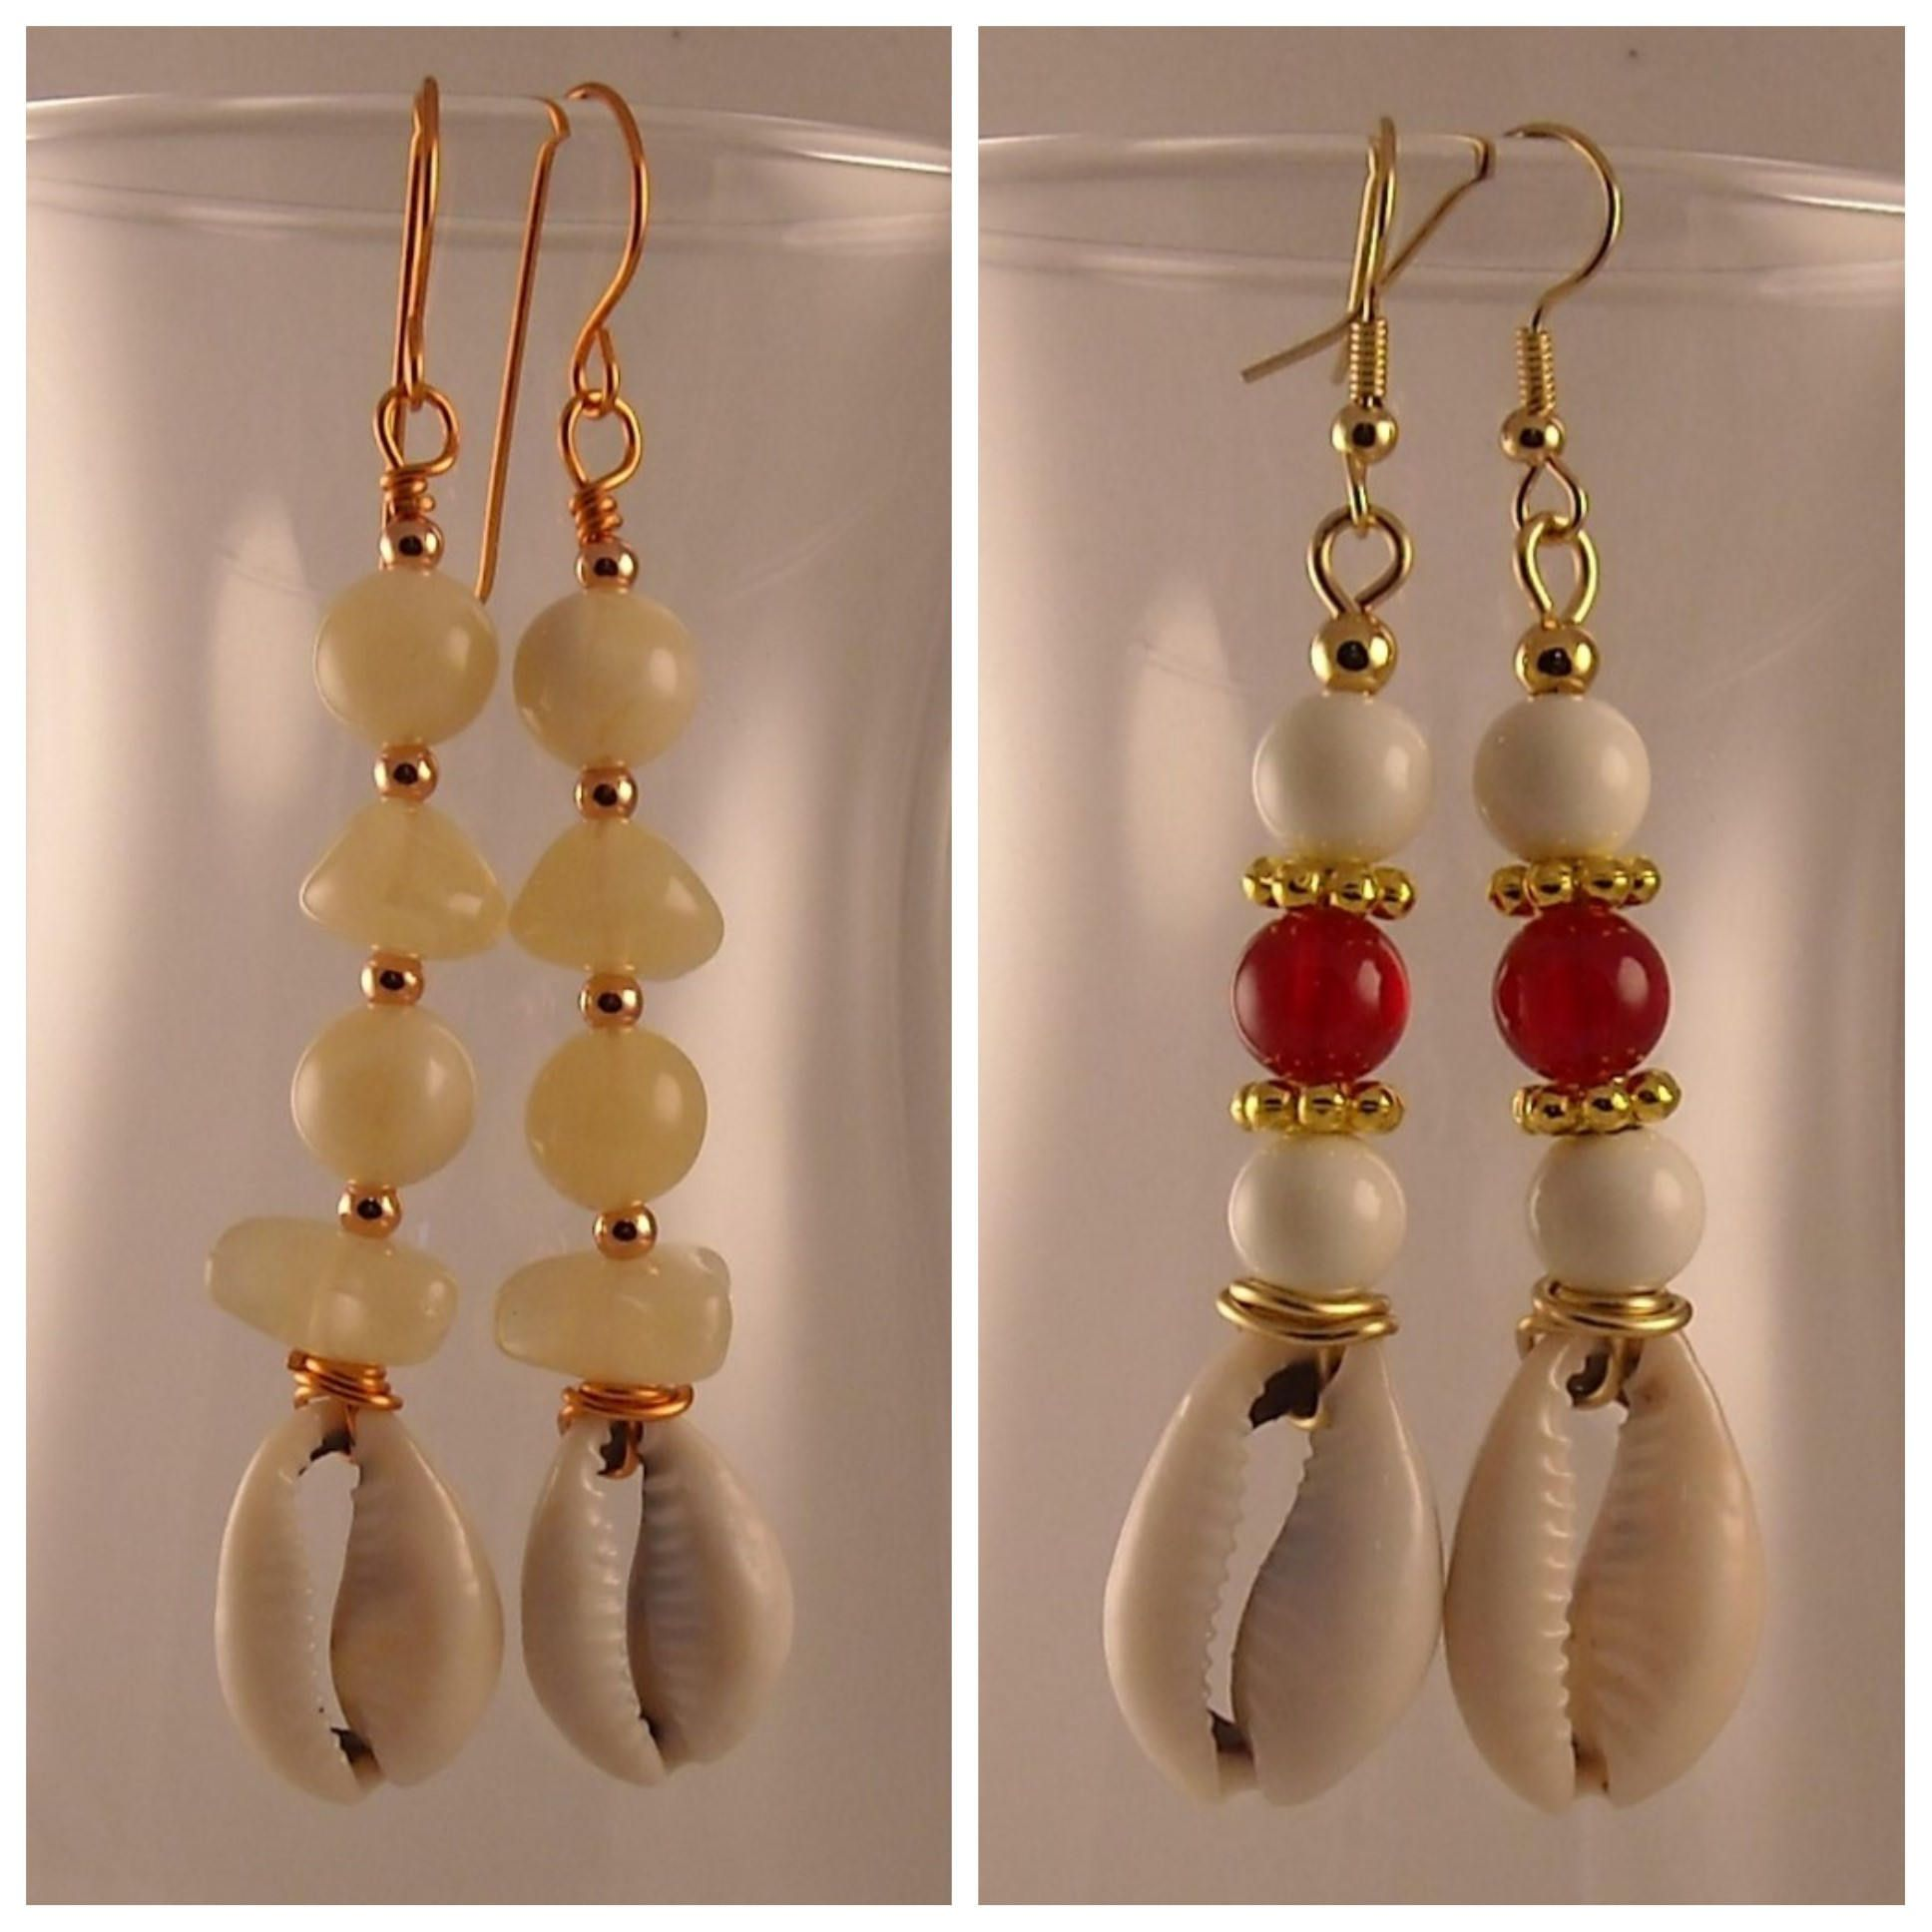 Afrocentric Beaded Cowrie Shells African Earrings Tribal Earrings African  Jewelry Ethnic Earrings Boho Earrings Boho Jewelry Unique Handmade